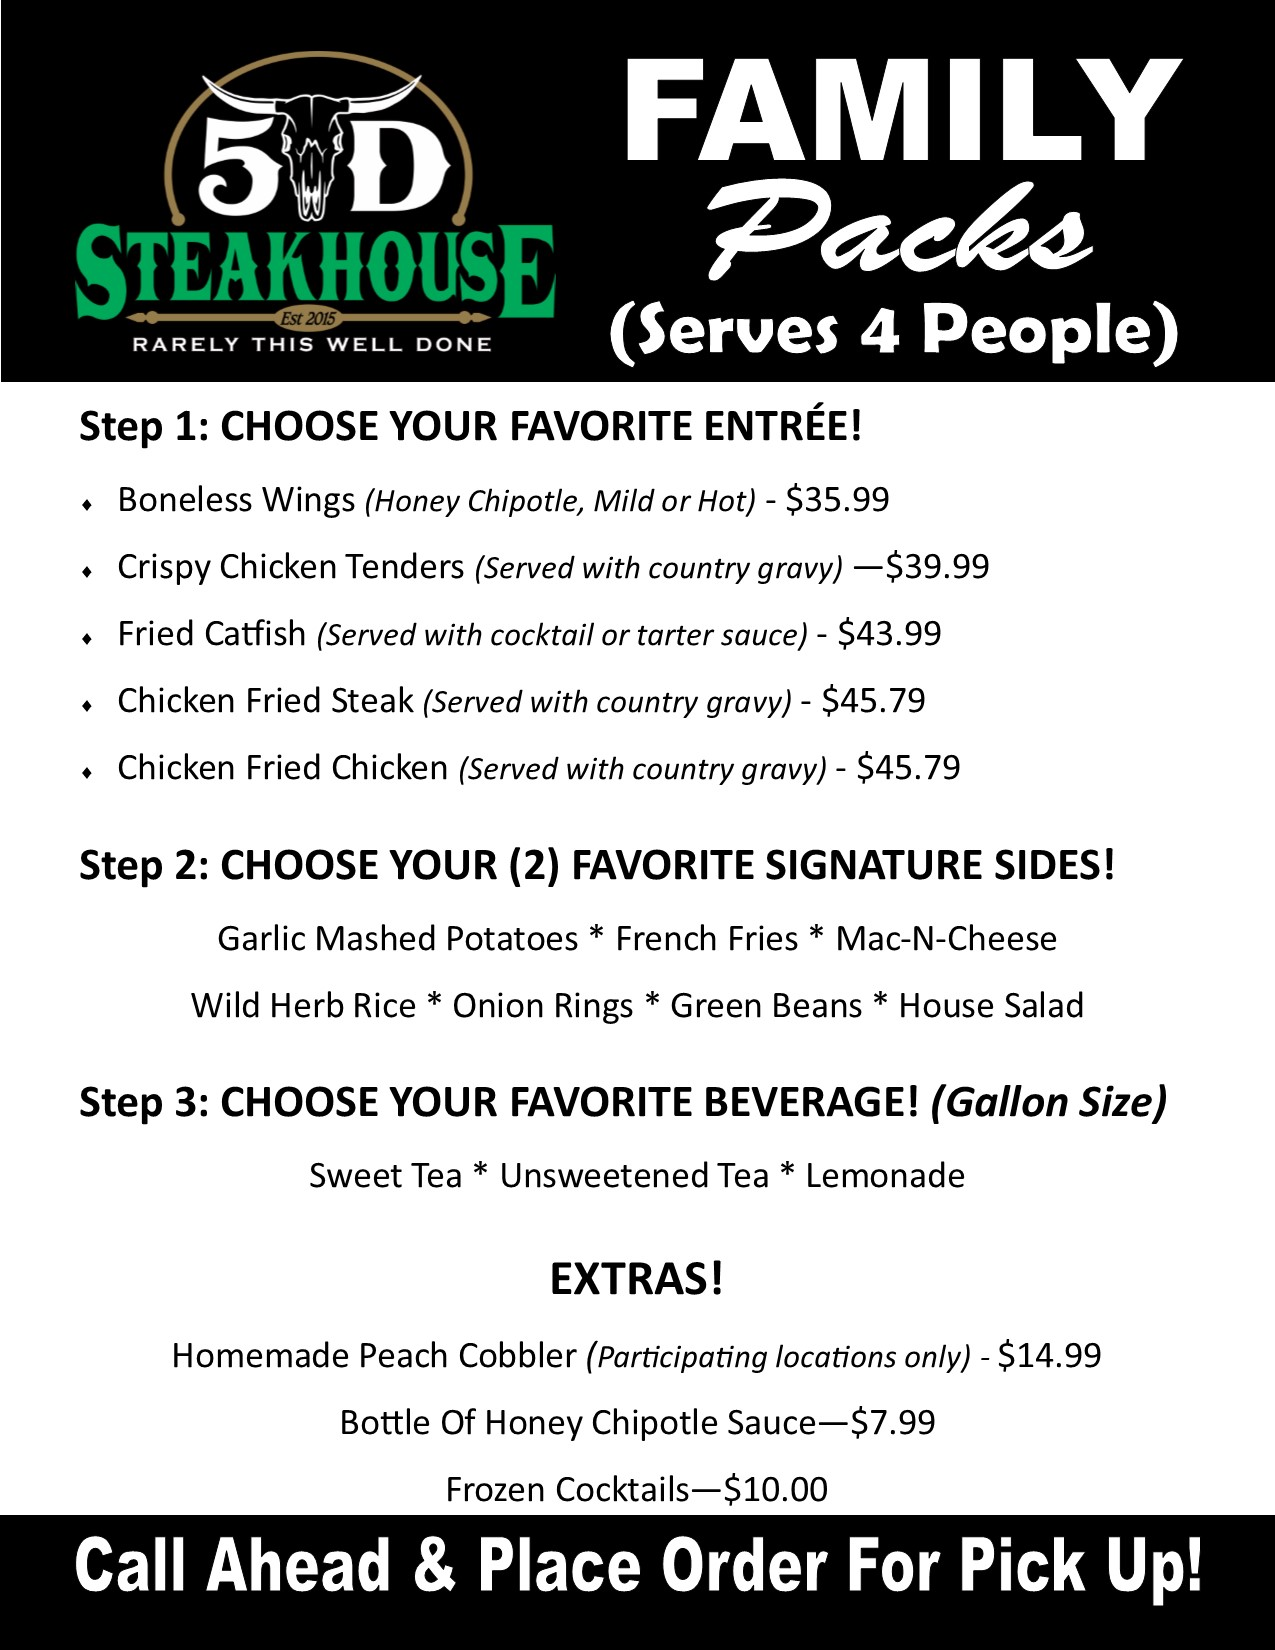 Family Packs. Serves 4. Step 1: Choose your favrite Entree! Crisyp Chicken Tenders 39.99, Boneless WIngs (Honey Chipotle, Mild or Hot) 35.99, Chicken Fried Steak (Served with country gravy), Fried Catfish (servedwith cocktail or tartar sauce) 43.99. Step 2: Choose your 2 favorite sides! Mashed Potatoes, French Fries, Mac-n-cheese, green Beans, haystack Vegetables or House salad. Step 3: Choose your favorite beverage! (gallon size) Sweet tea, unsweetened tea or lemonade. All Family Packsinclude Texas Toast.